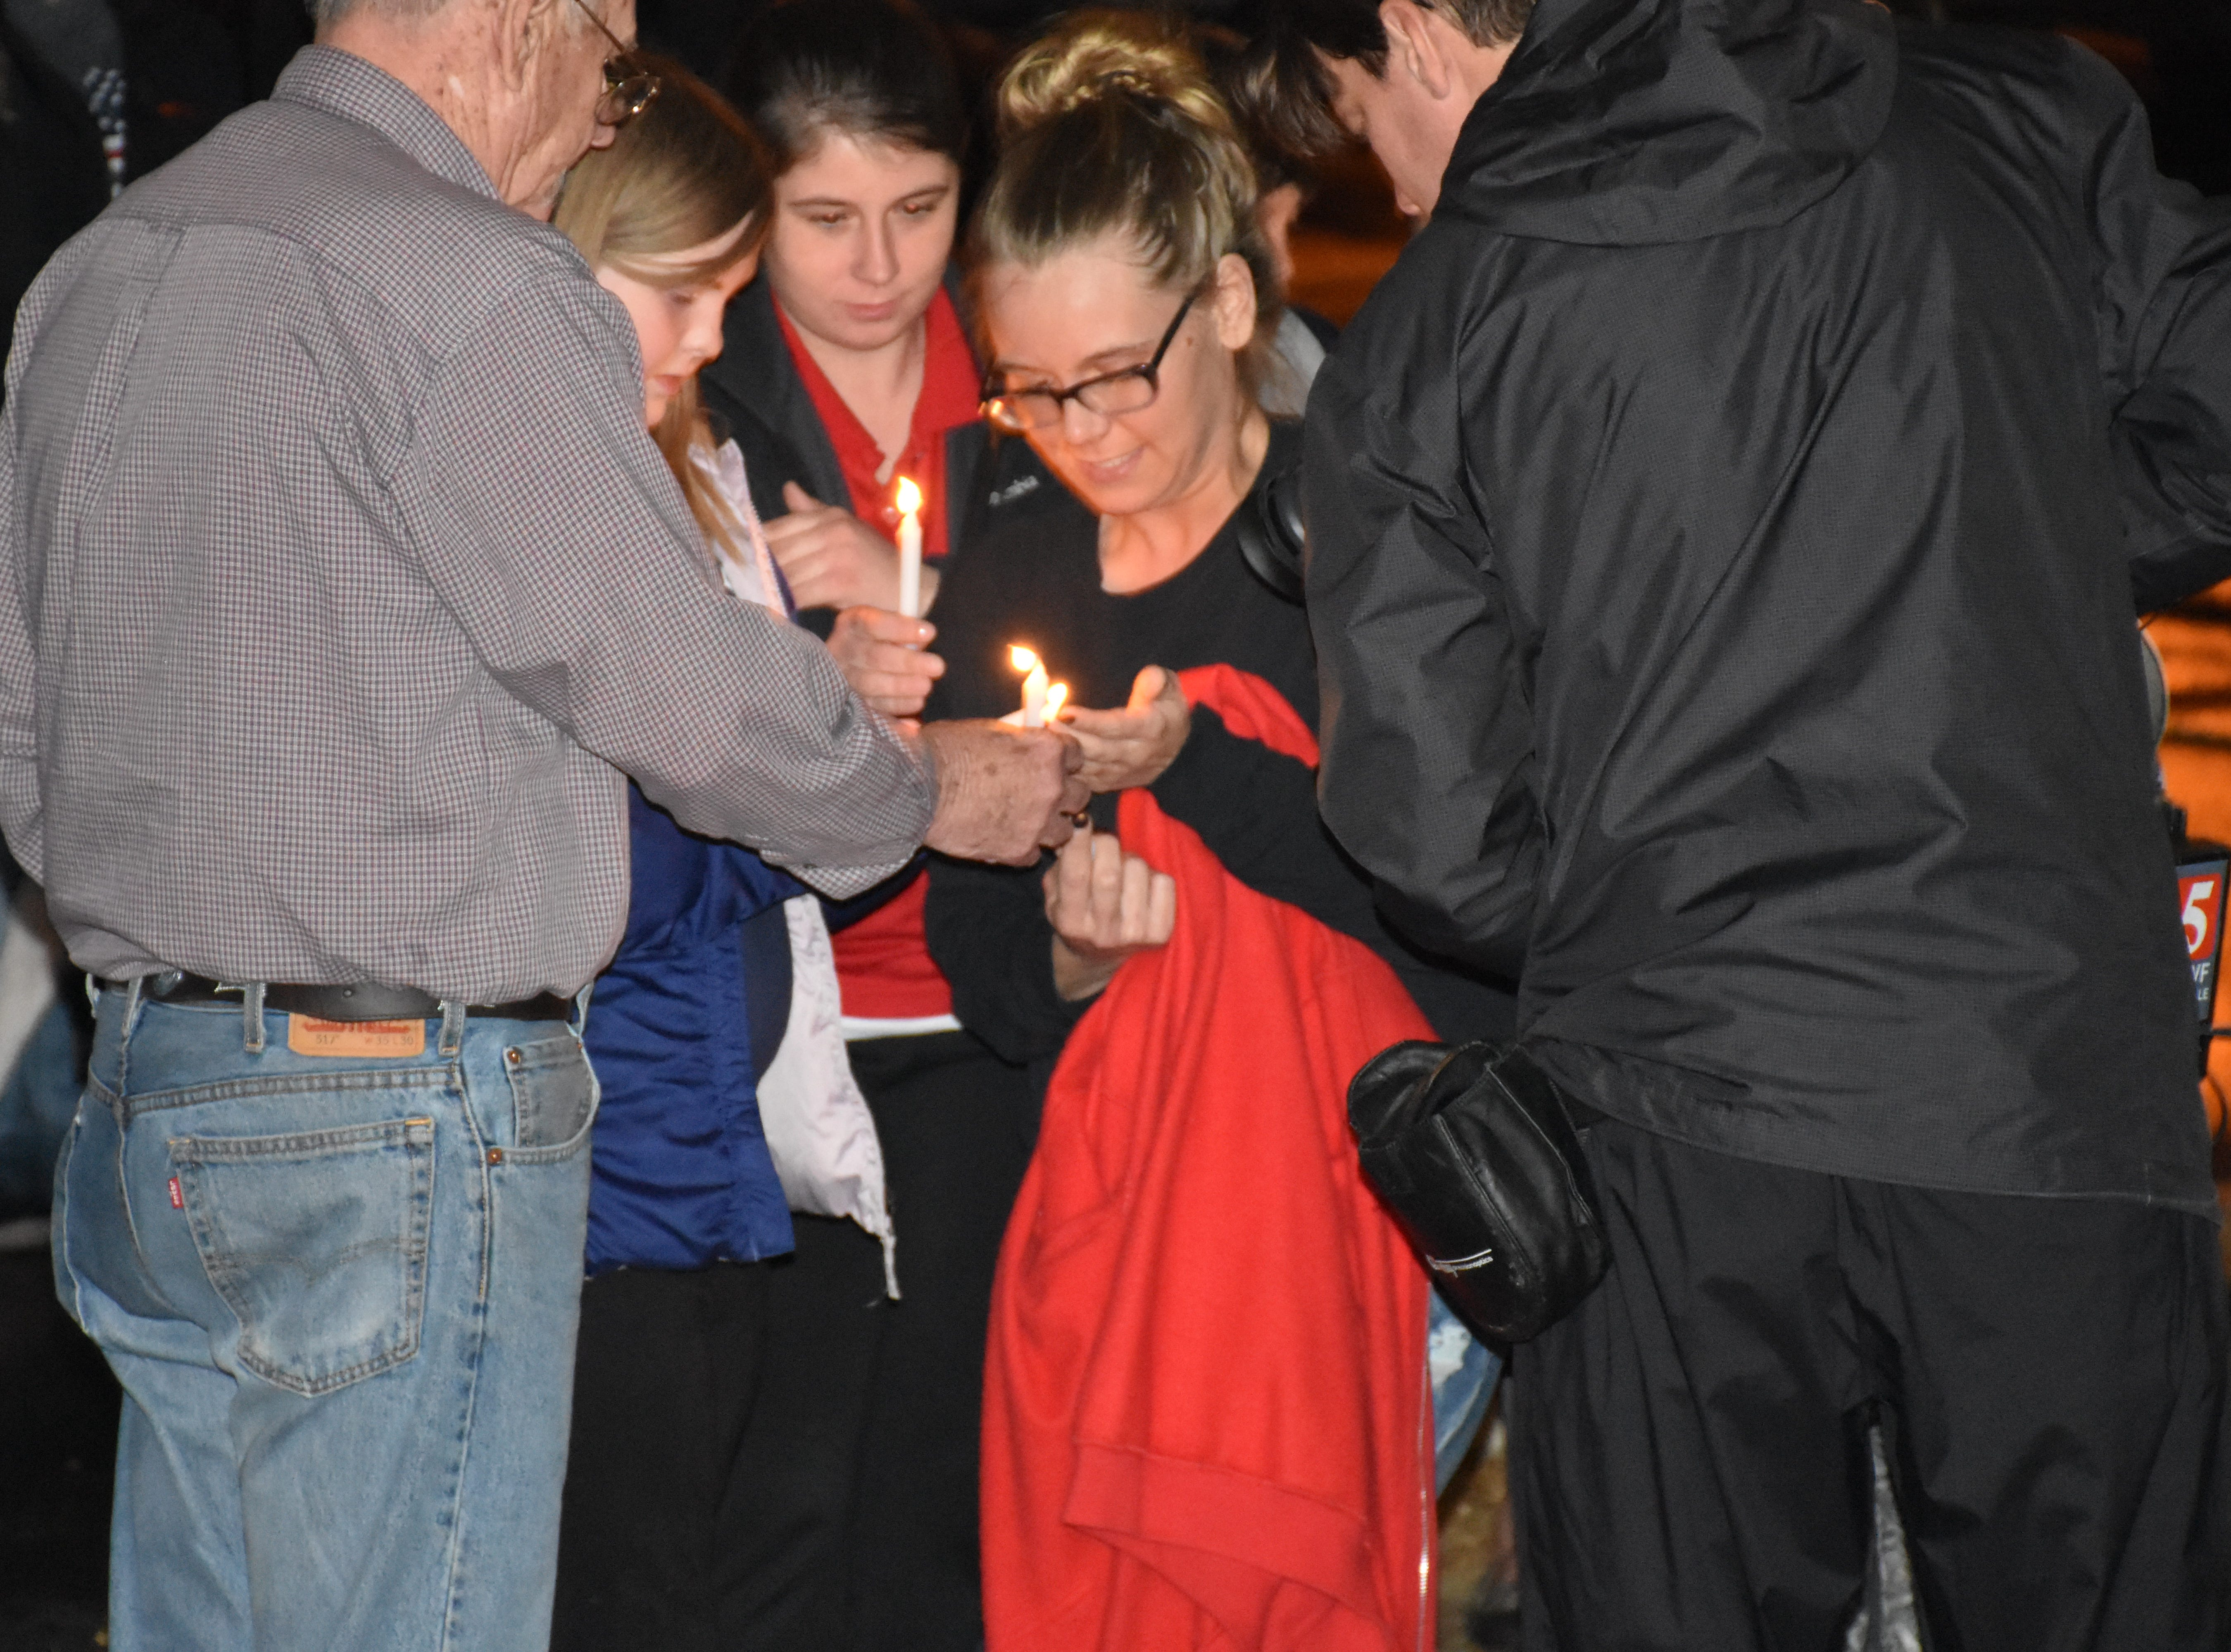 Images from the one year vigil remembering the day Joe Clyde Daniels was reported missing in Dickson County. Joe Clyde's father confessed to the murder, investigators say.